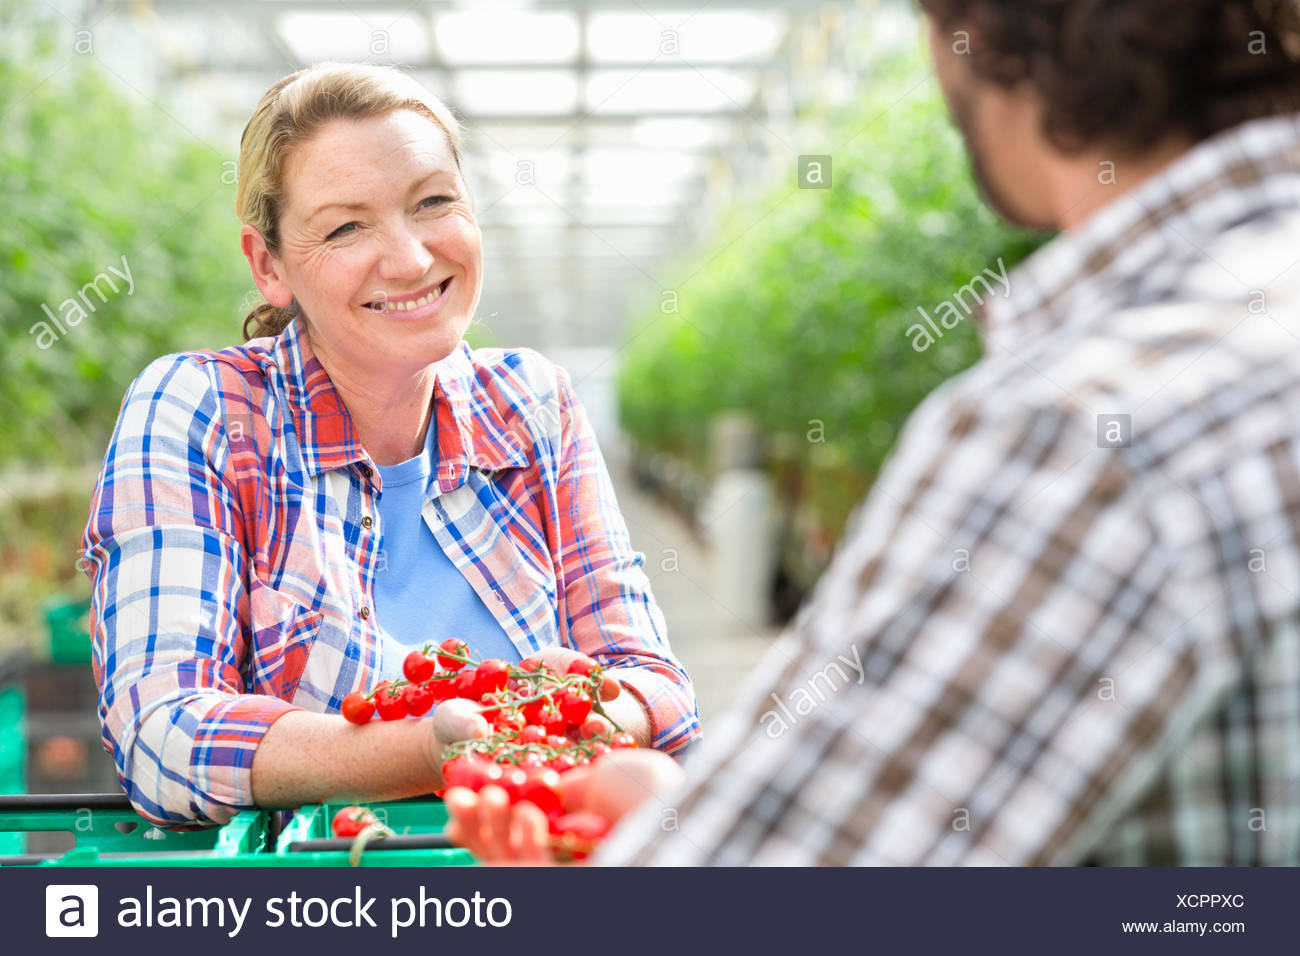 Growers talking and inspecting ripe red vine tomatoes in greenhouse - Stock Image